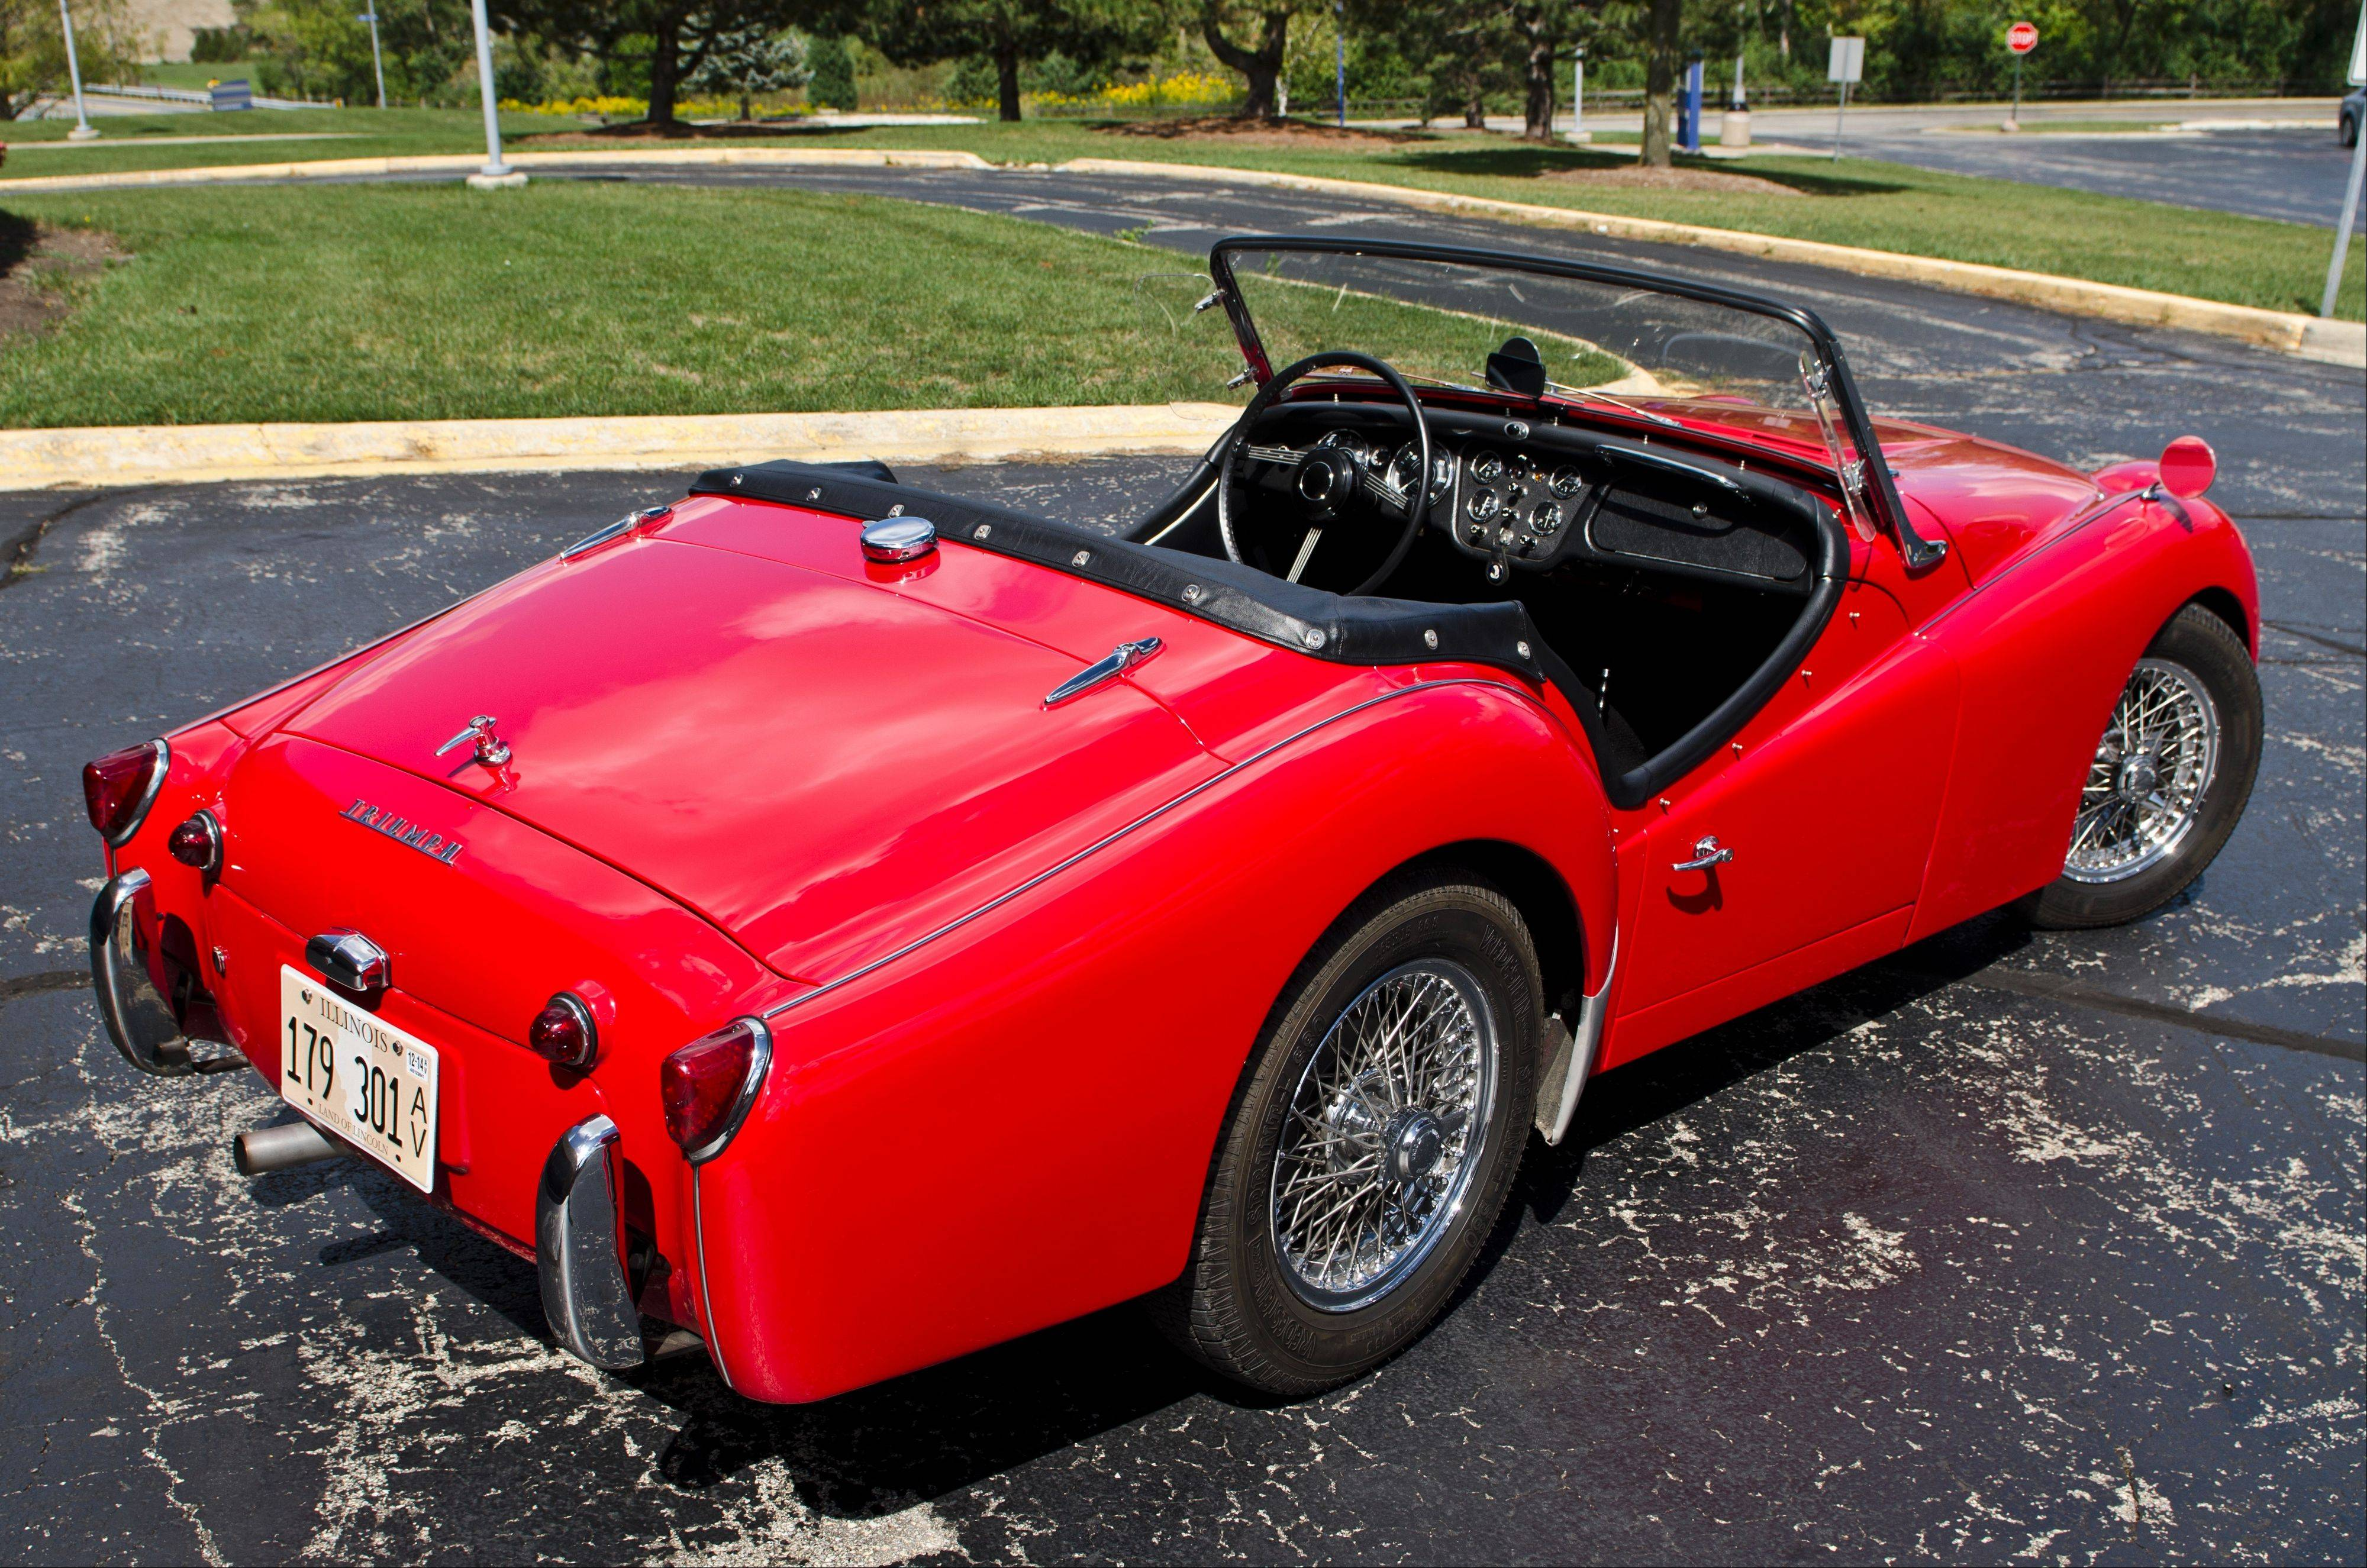 The 1960 TR3A has been Thanos Kourliouros' pride and joy for more than 35 years.